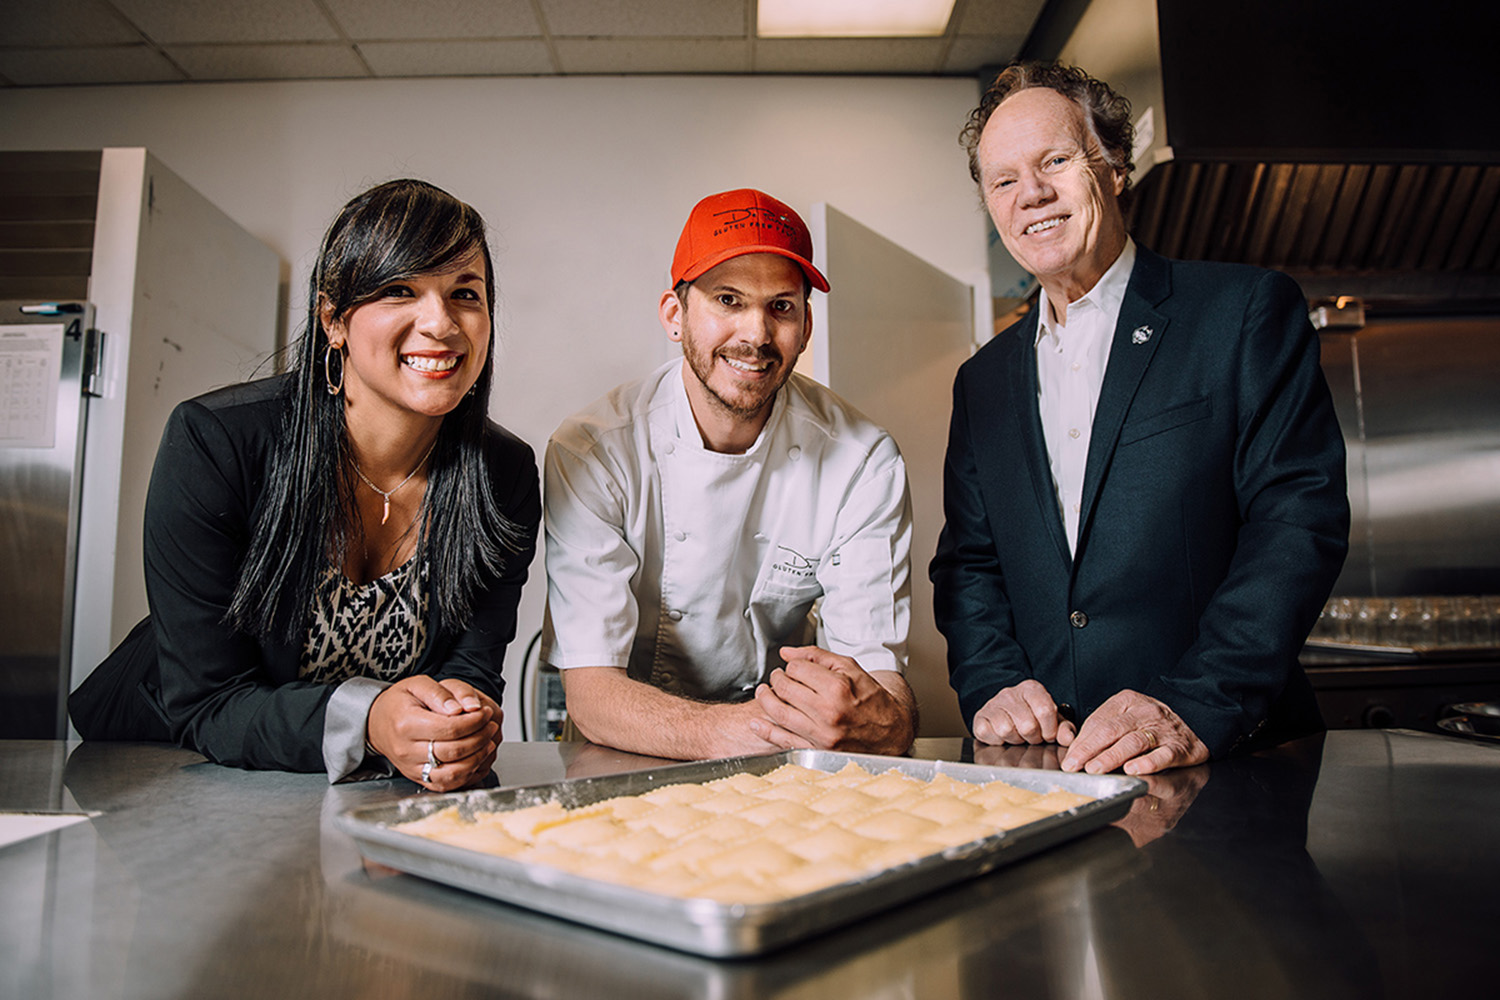 Gluten-Free and Worry-Free: Pasta Business Gets Help from MBA Student